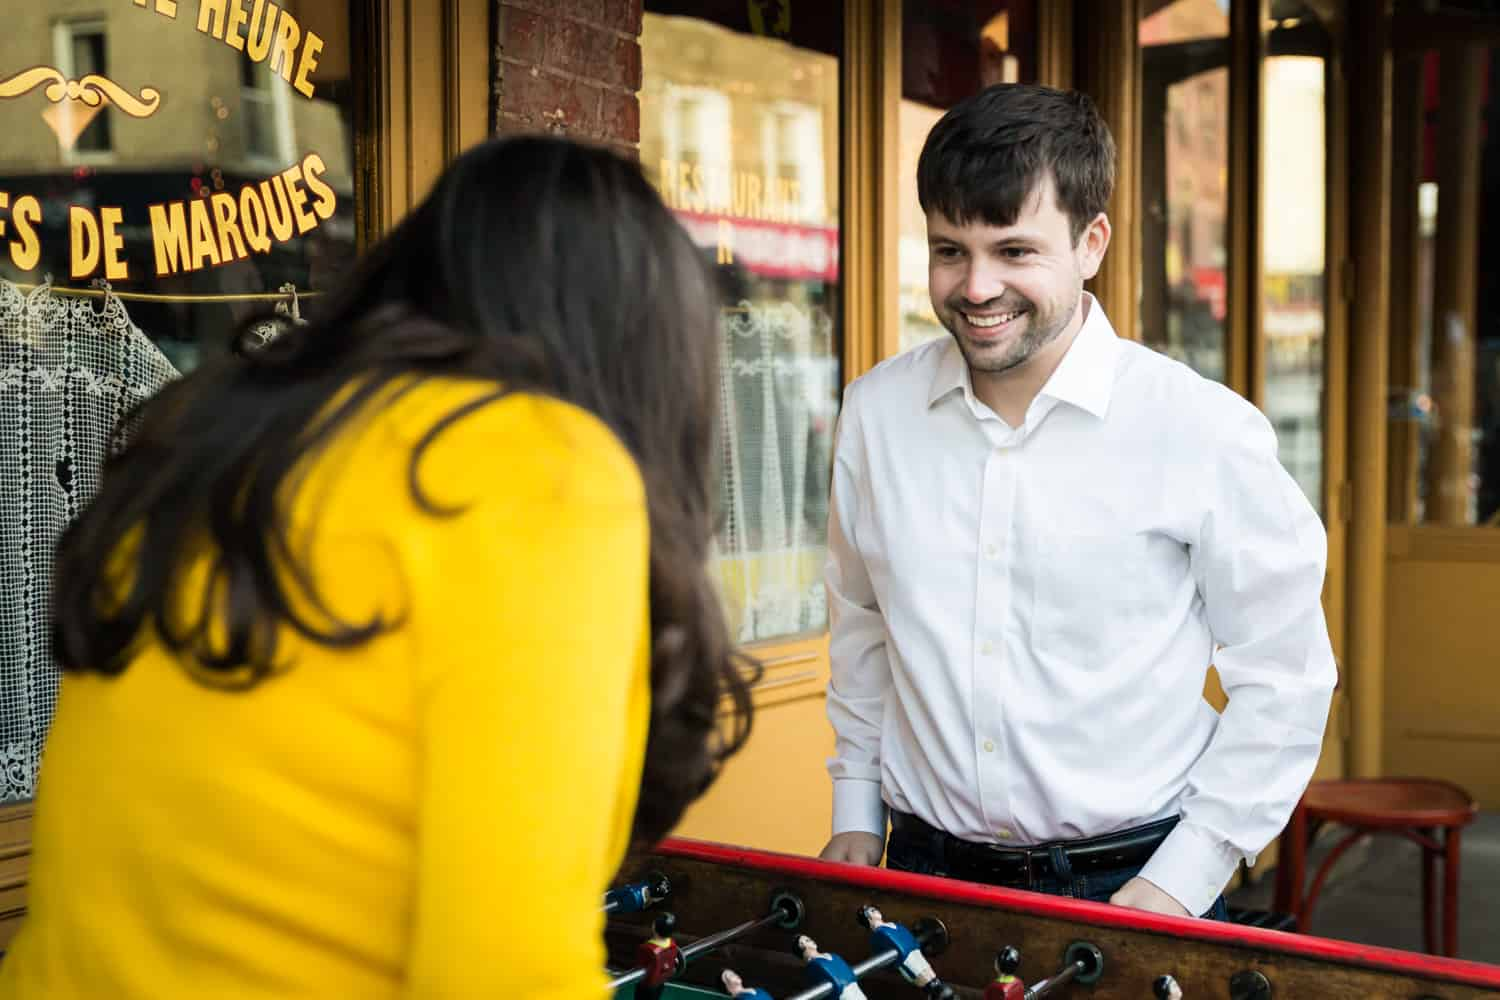 Couple playing foosball outside of restaurant